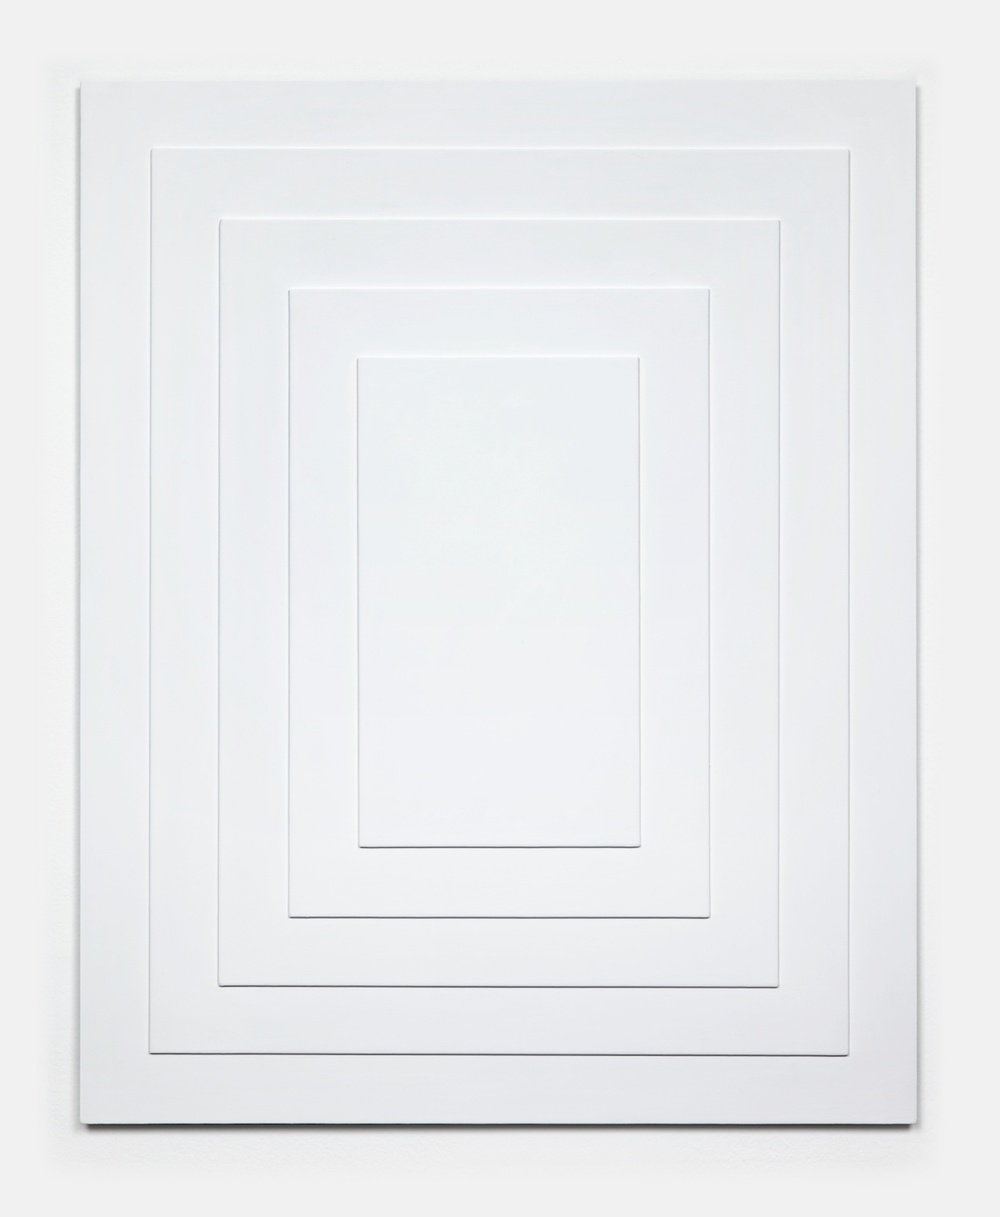 "Lisa Williamson White Doorways 2011 Acrylic on steel 31"" x 24"" LW078"